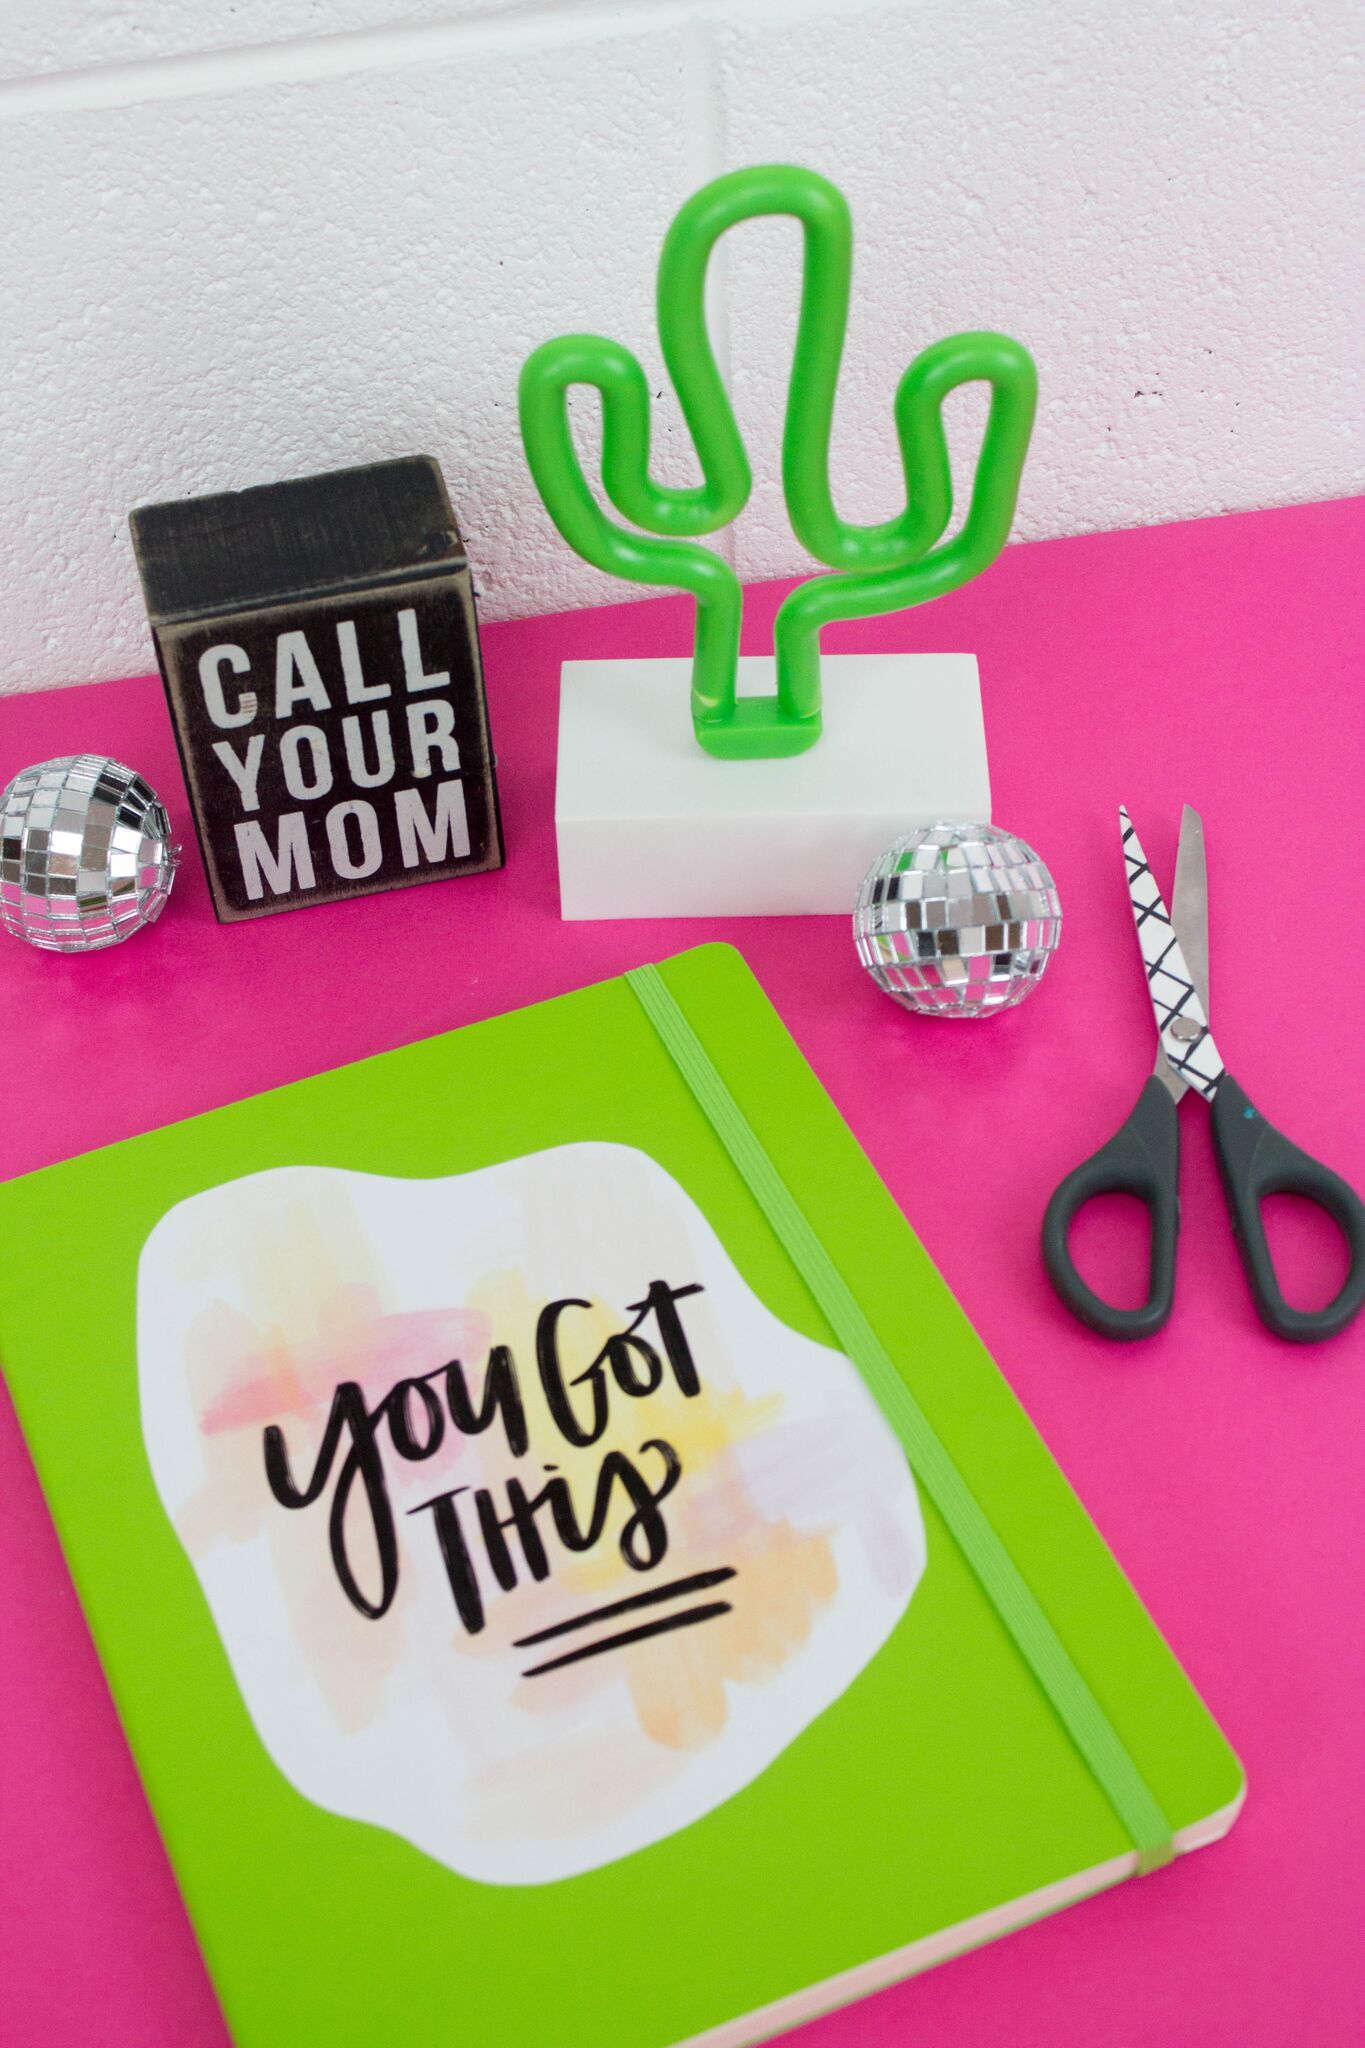 The Ultimate Cricut Guide For Beginners - A Little Craft In Your Day